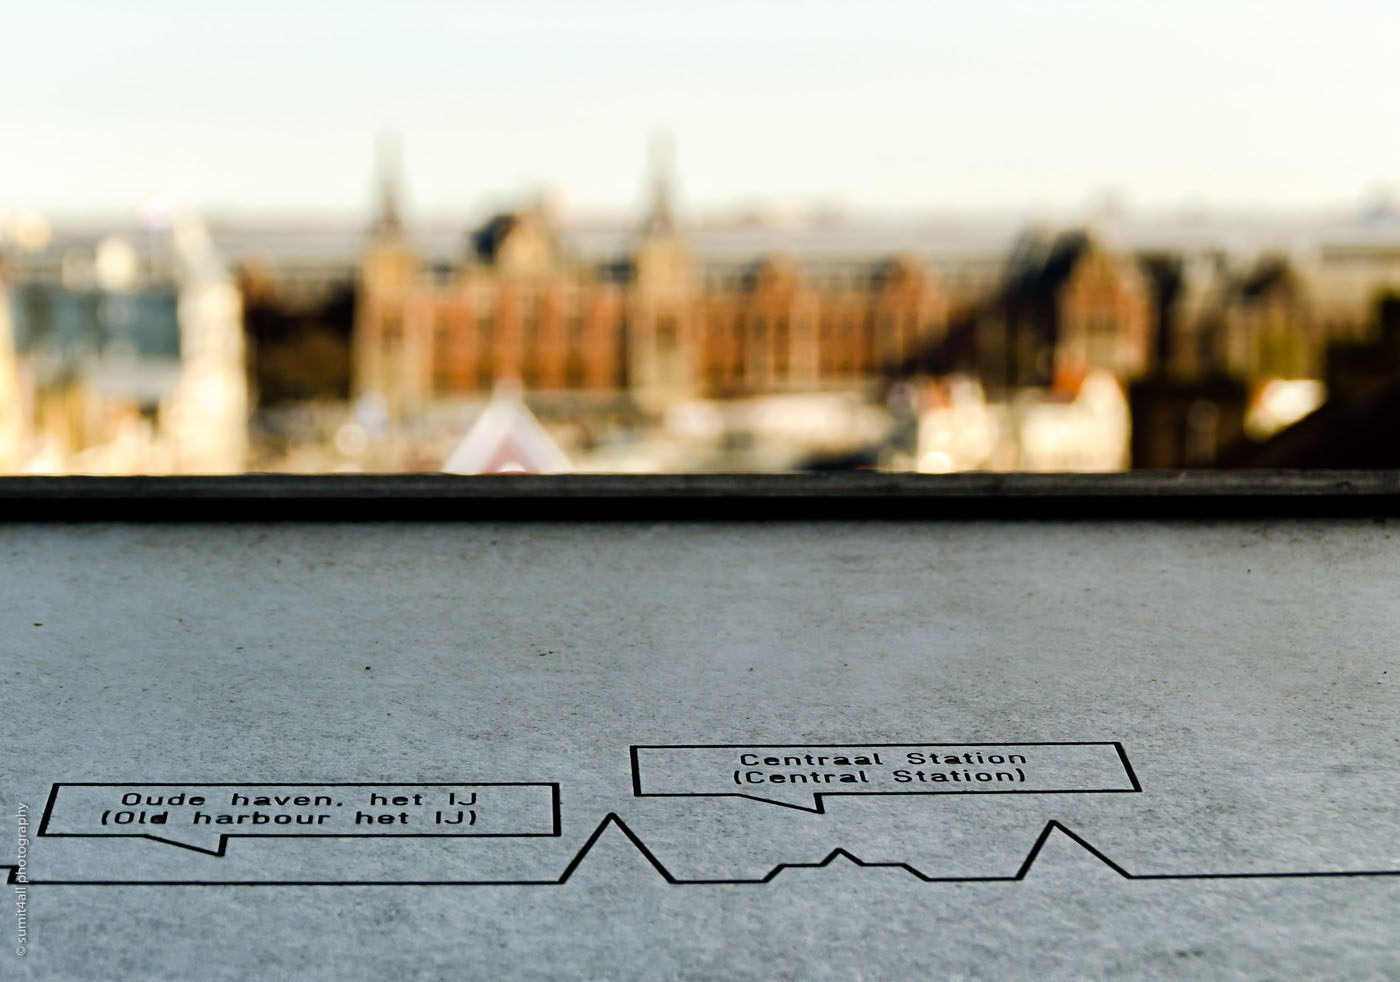 Amsterdam Centraal Station from the Beurs Van Berlage